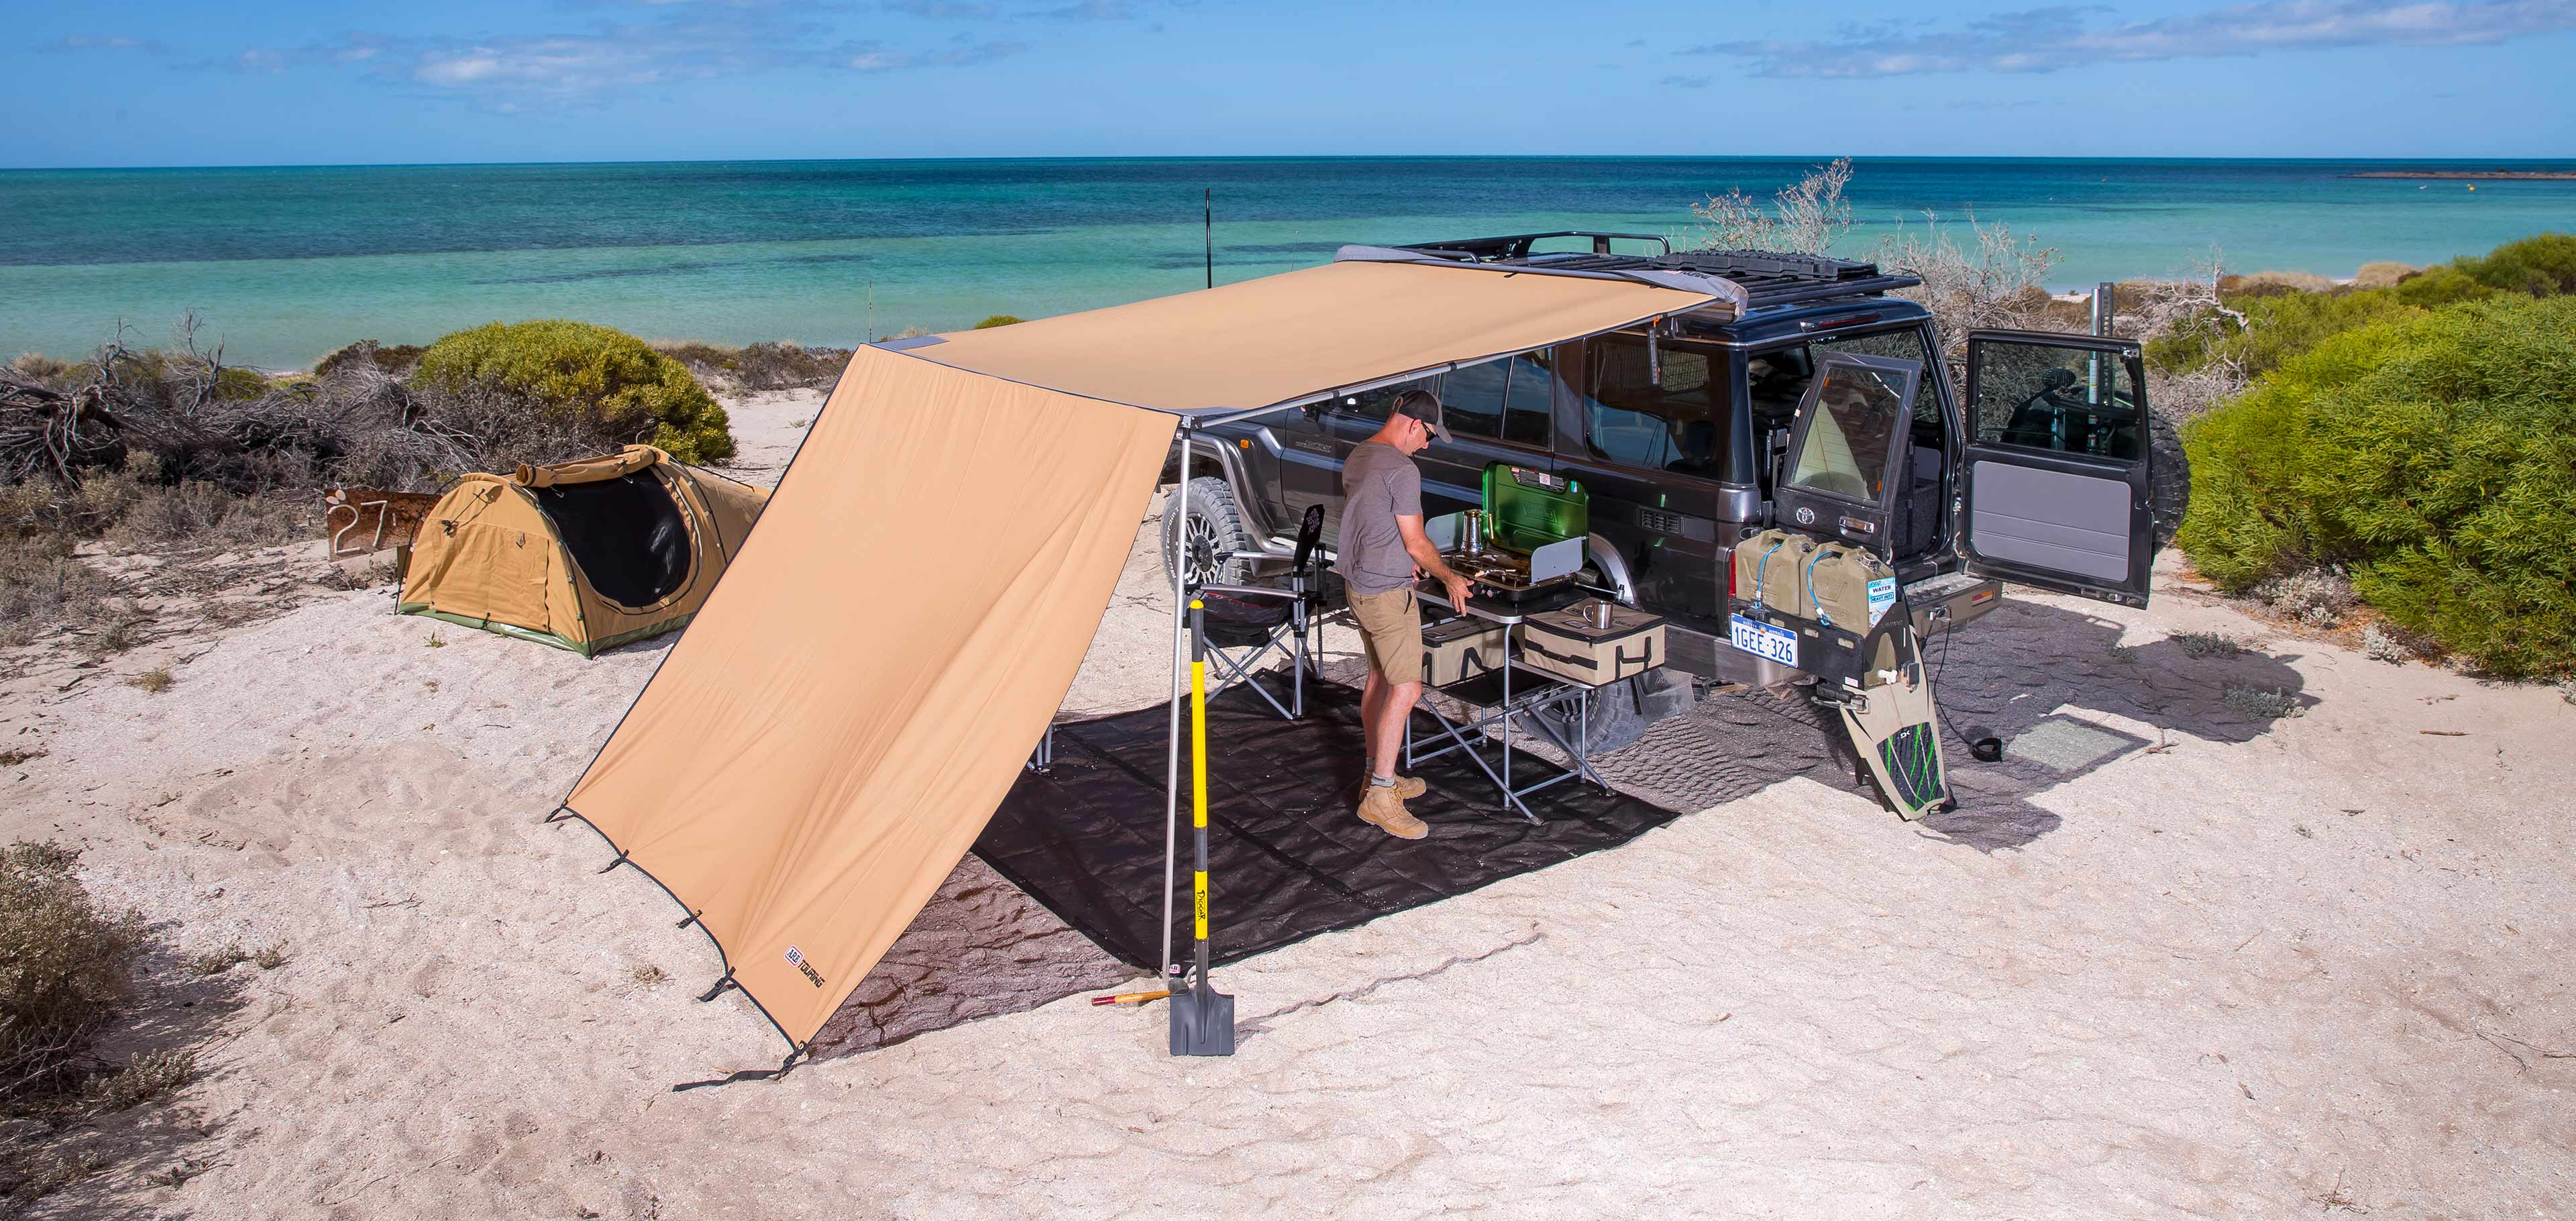 19d2d4e9c7a Home > Tents, Awnings & Camping > Awnings & Accessories